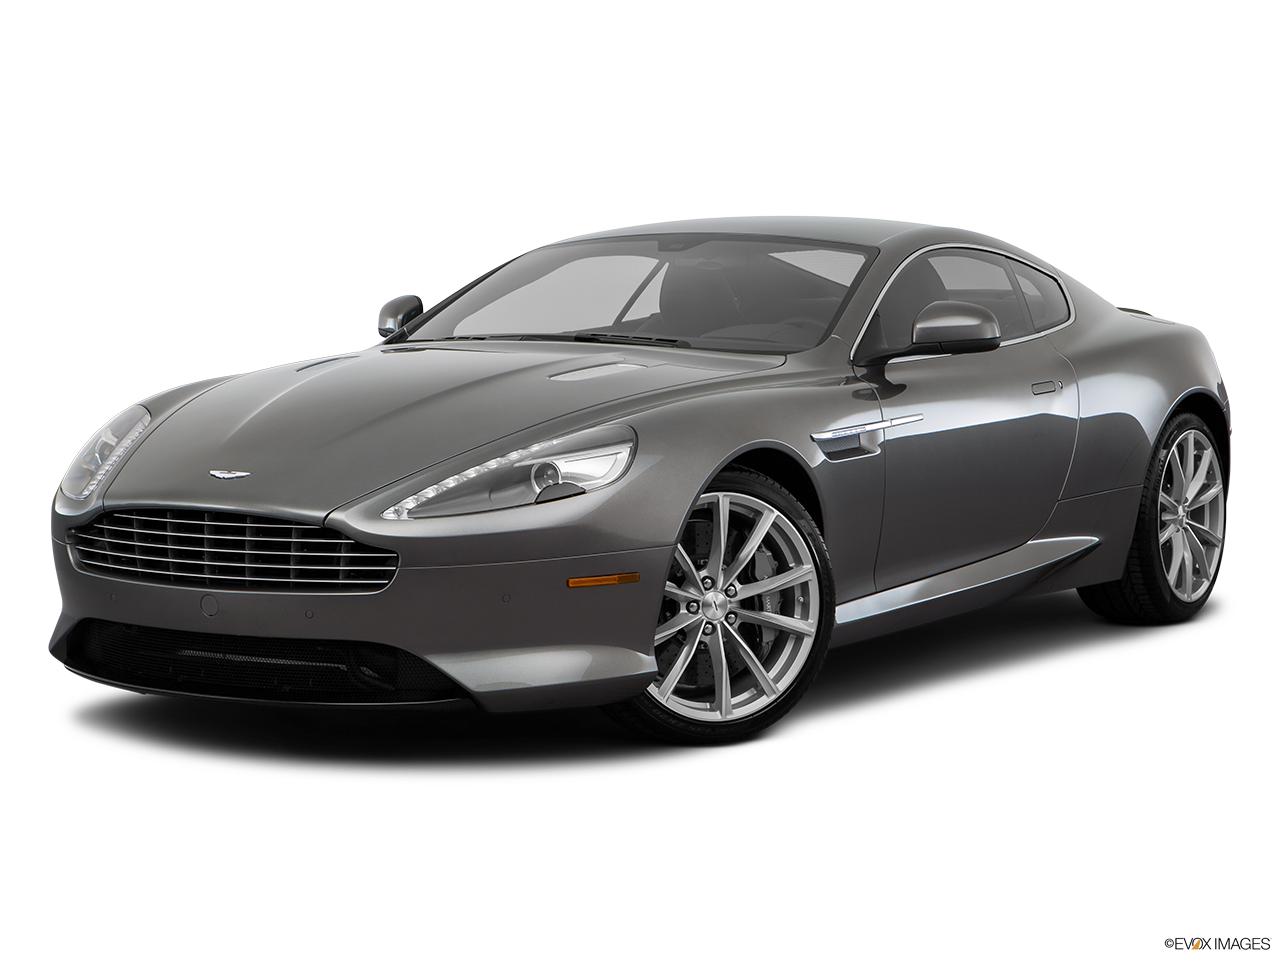 2016 aston martin db9 dealer serving los angeles galpin aston martin. Black Bedroom Furniture Sets. Home Design Ideas